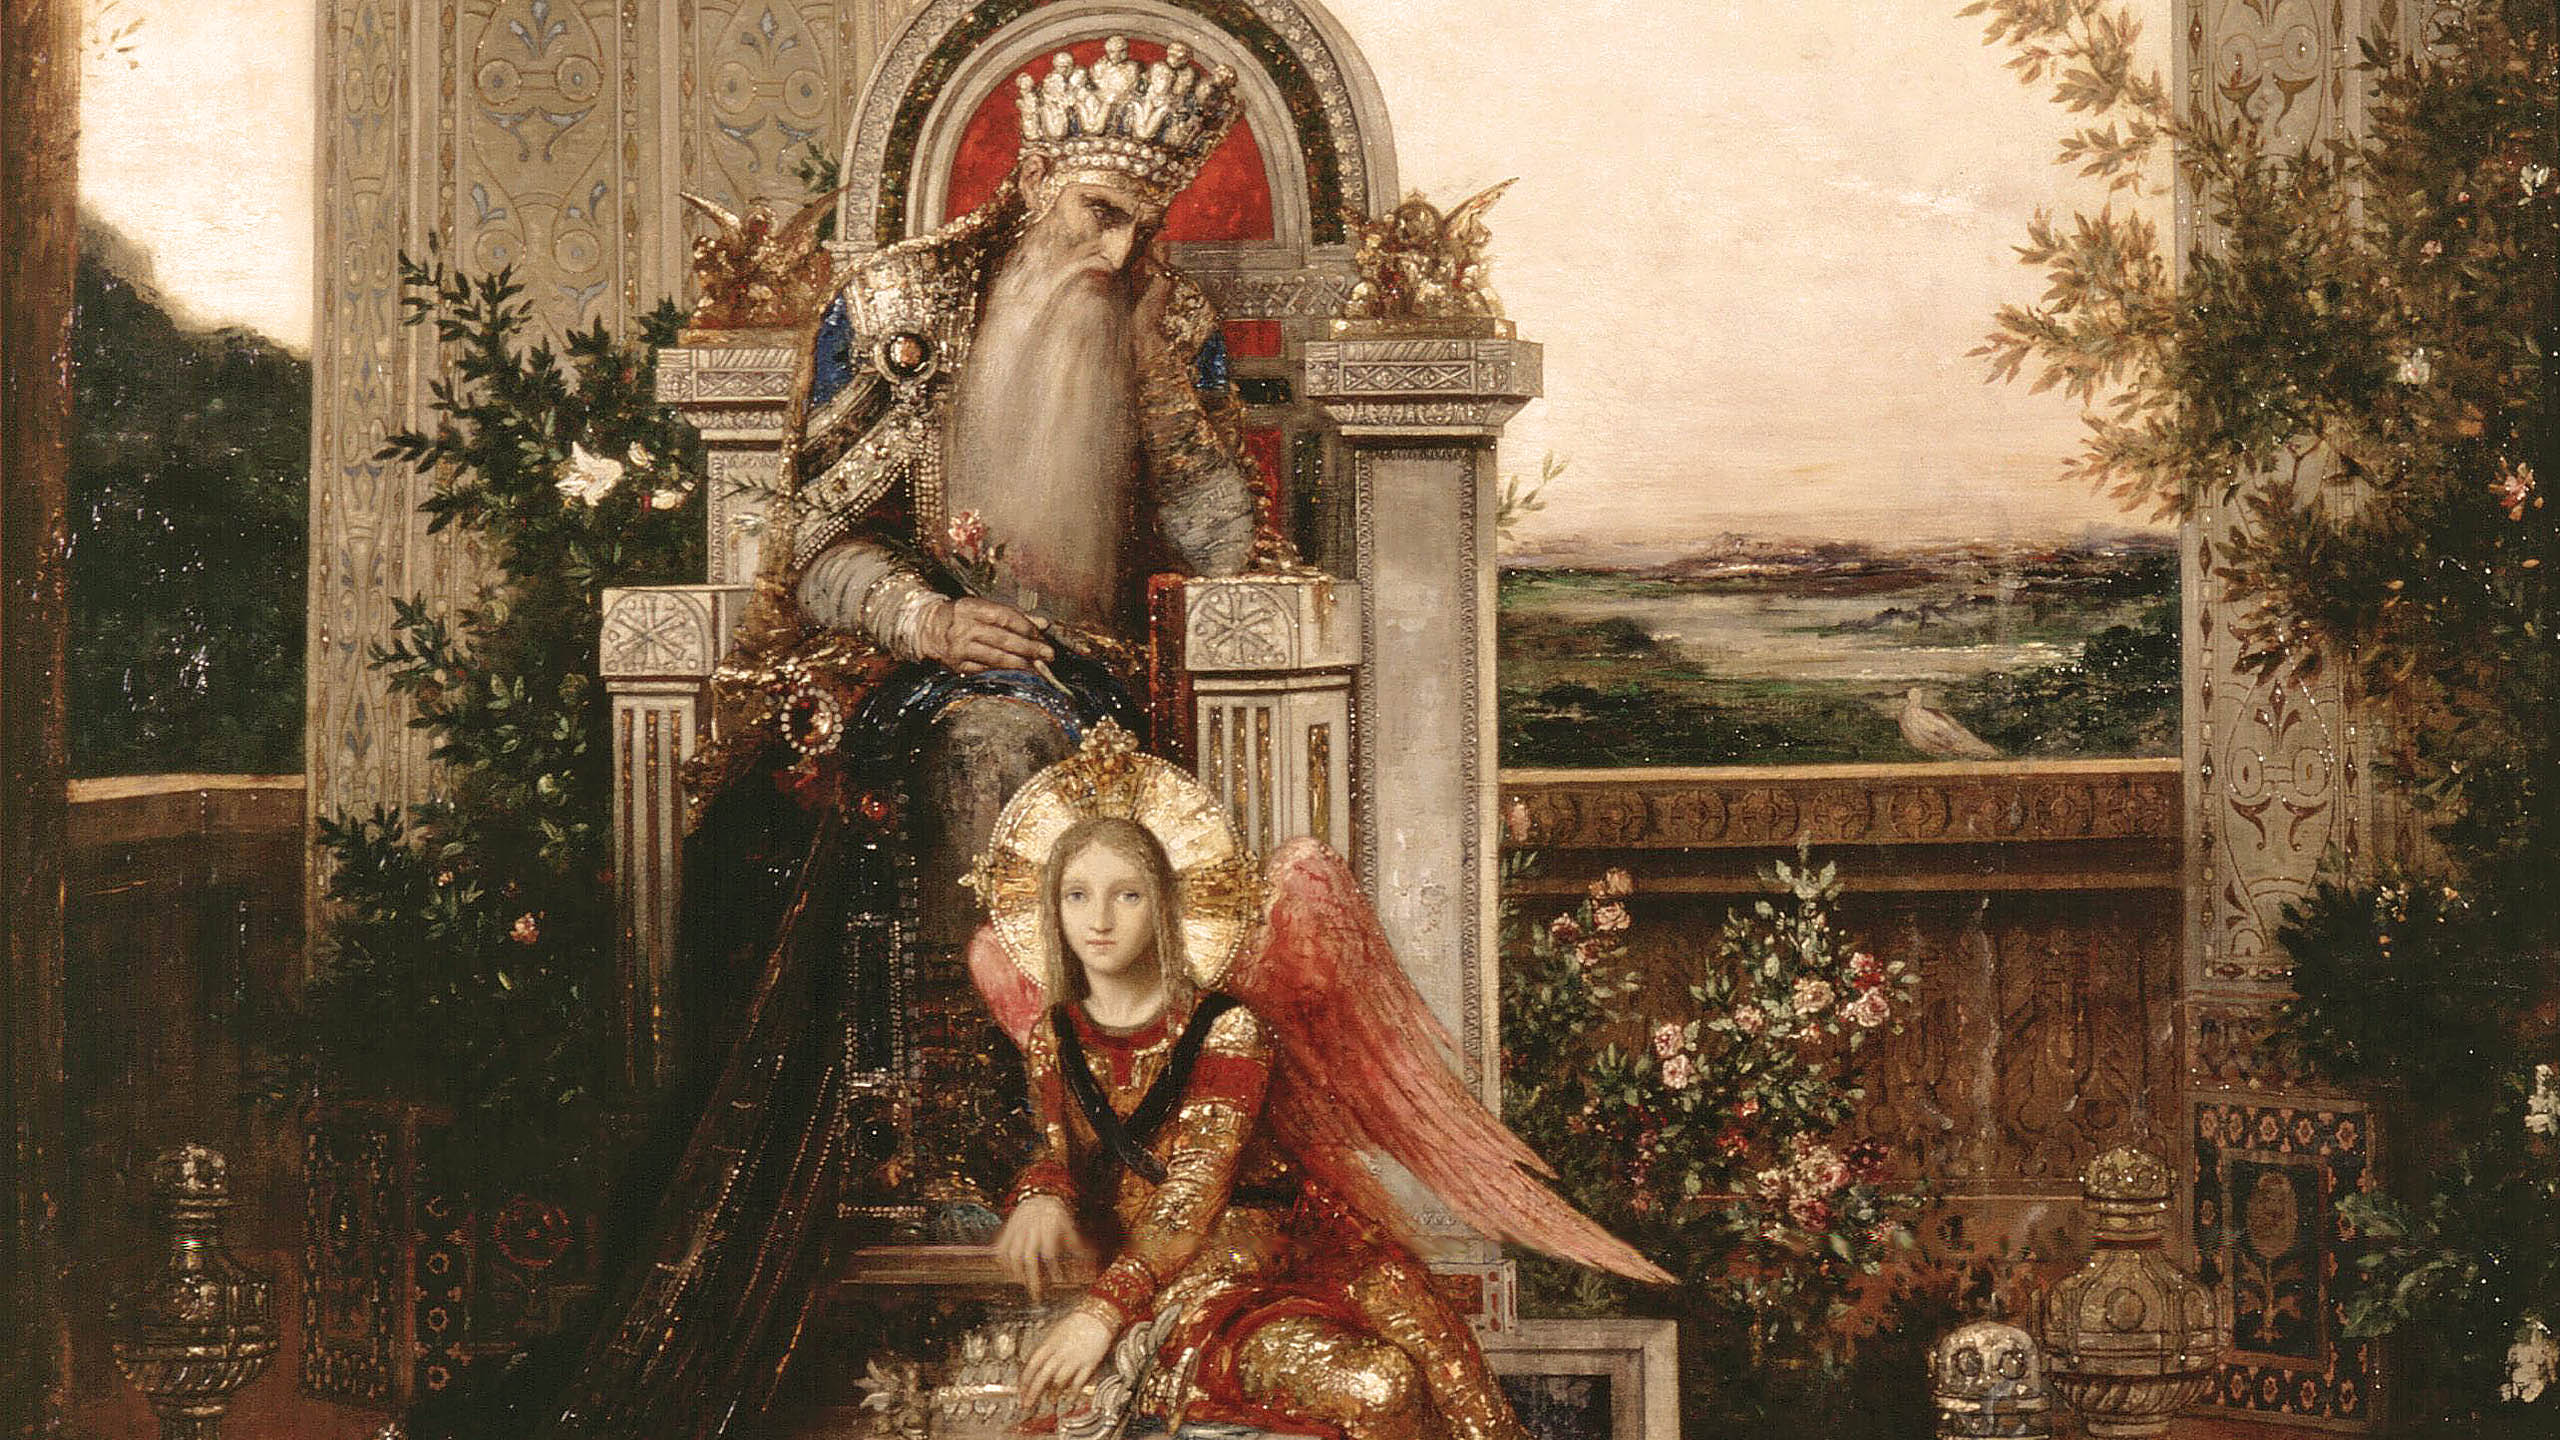 Gustave Moreau - King david 2560x1440